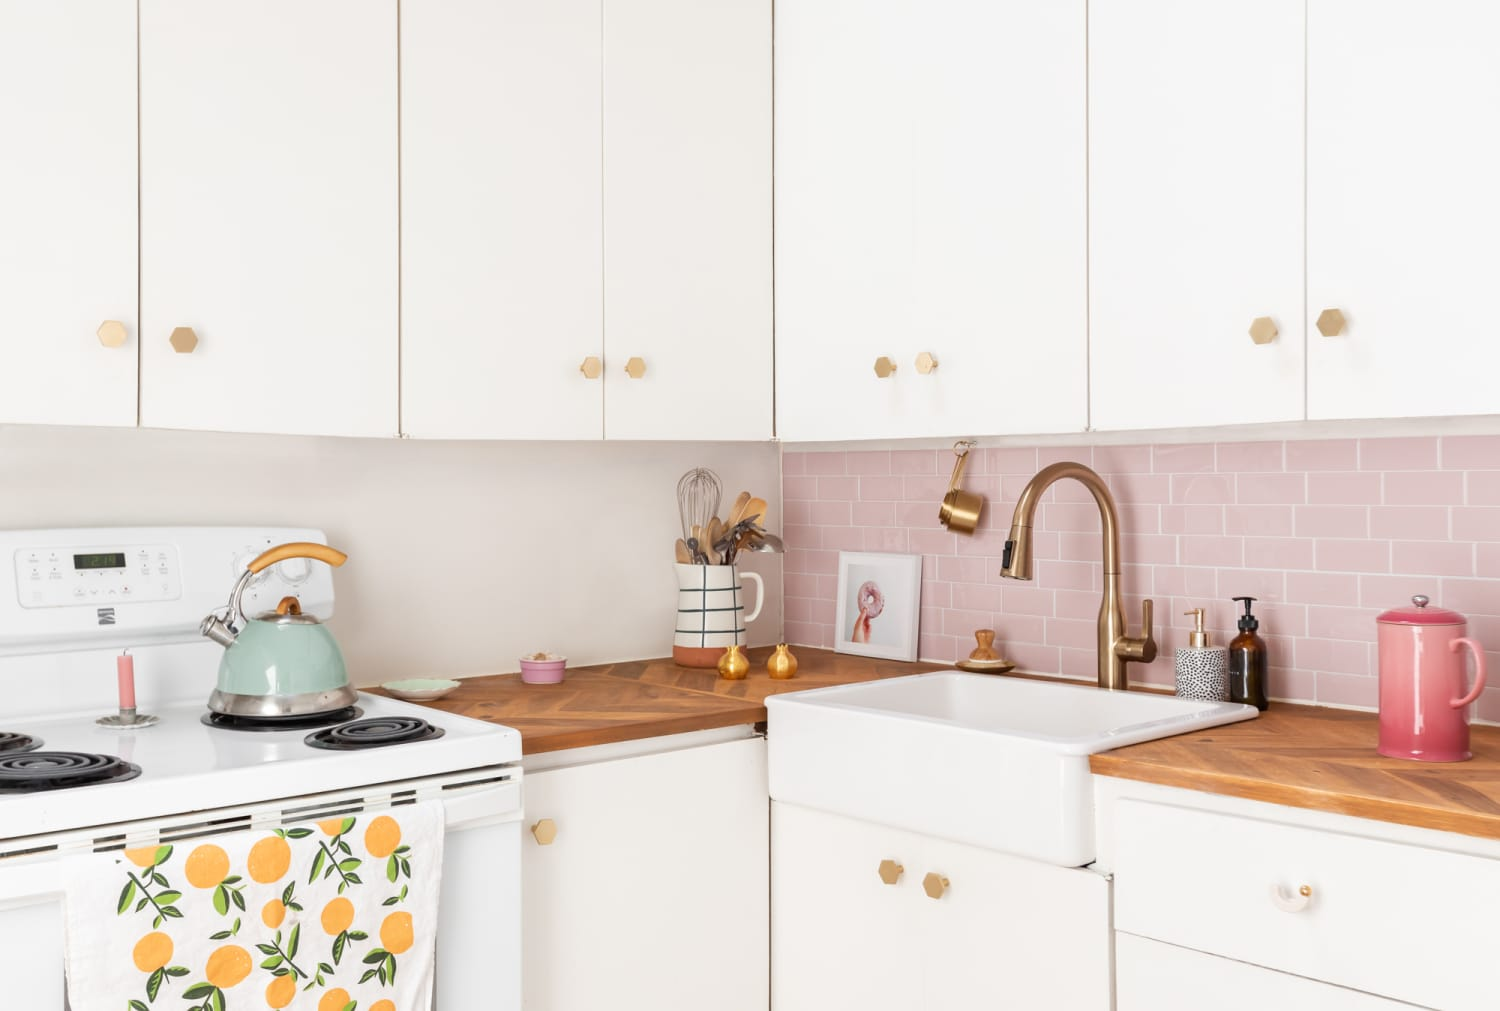 The Best Choices to Make for a Kitchen That Will Last Forever, According to Kitchen Designers